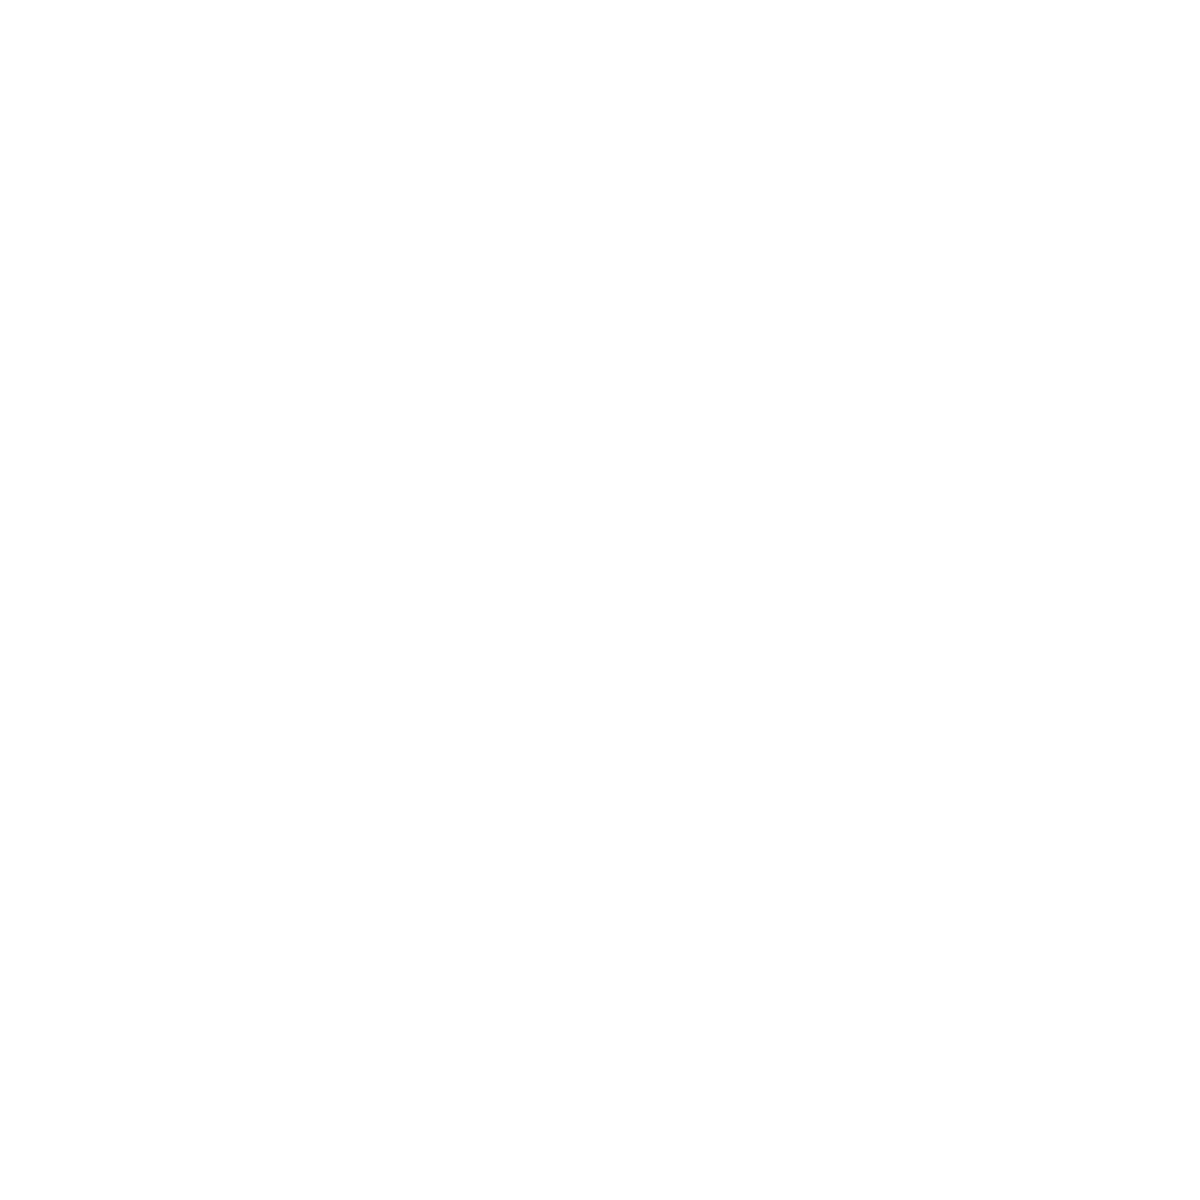 Azure Leadership Group